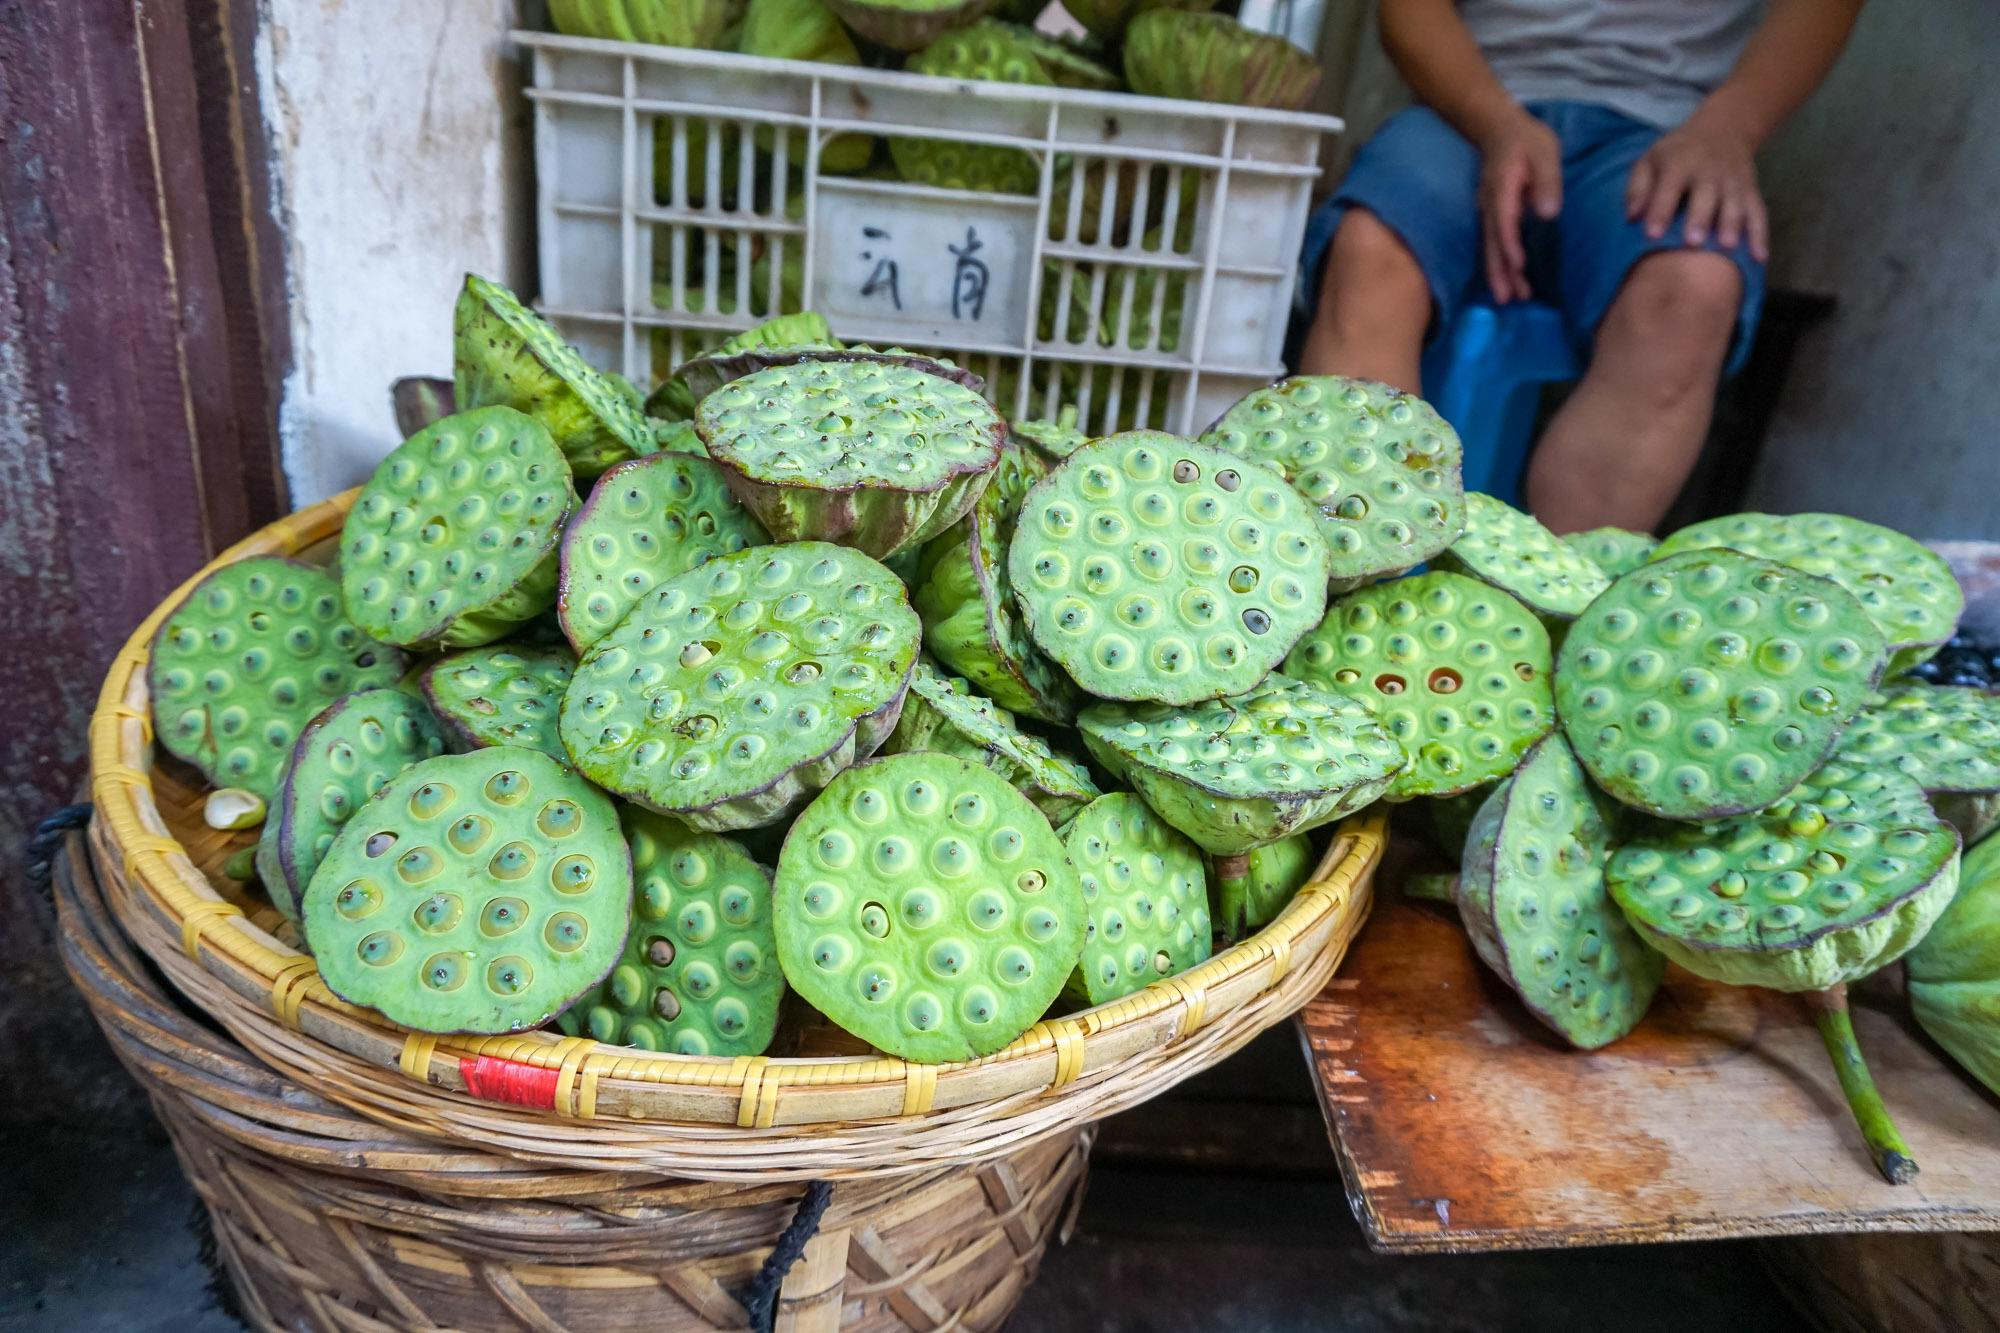 Lotus fruit are popular asian fruits where the seeds in the giant pod at the center of the flower have a lovely sweet fruit.